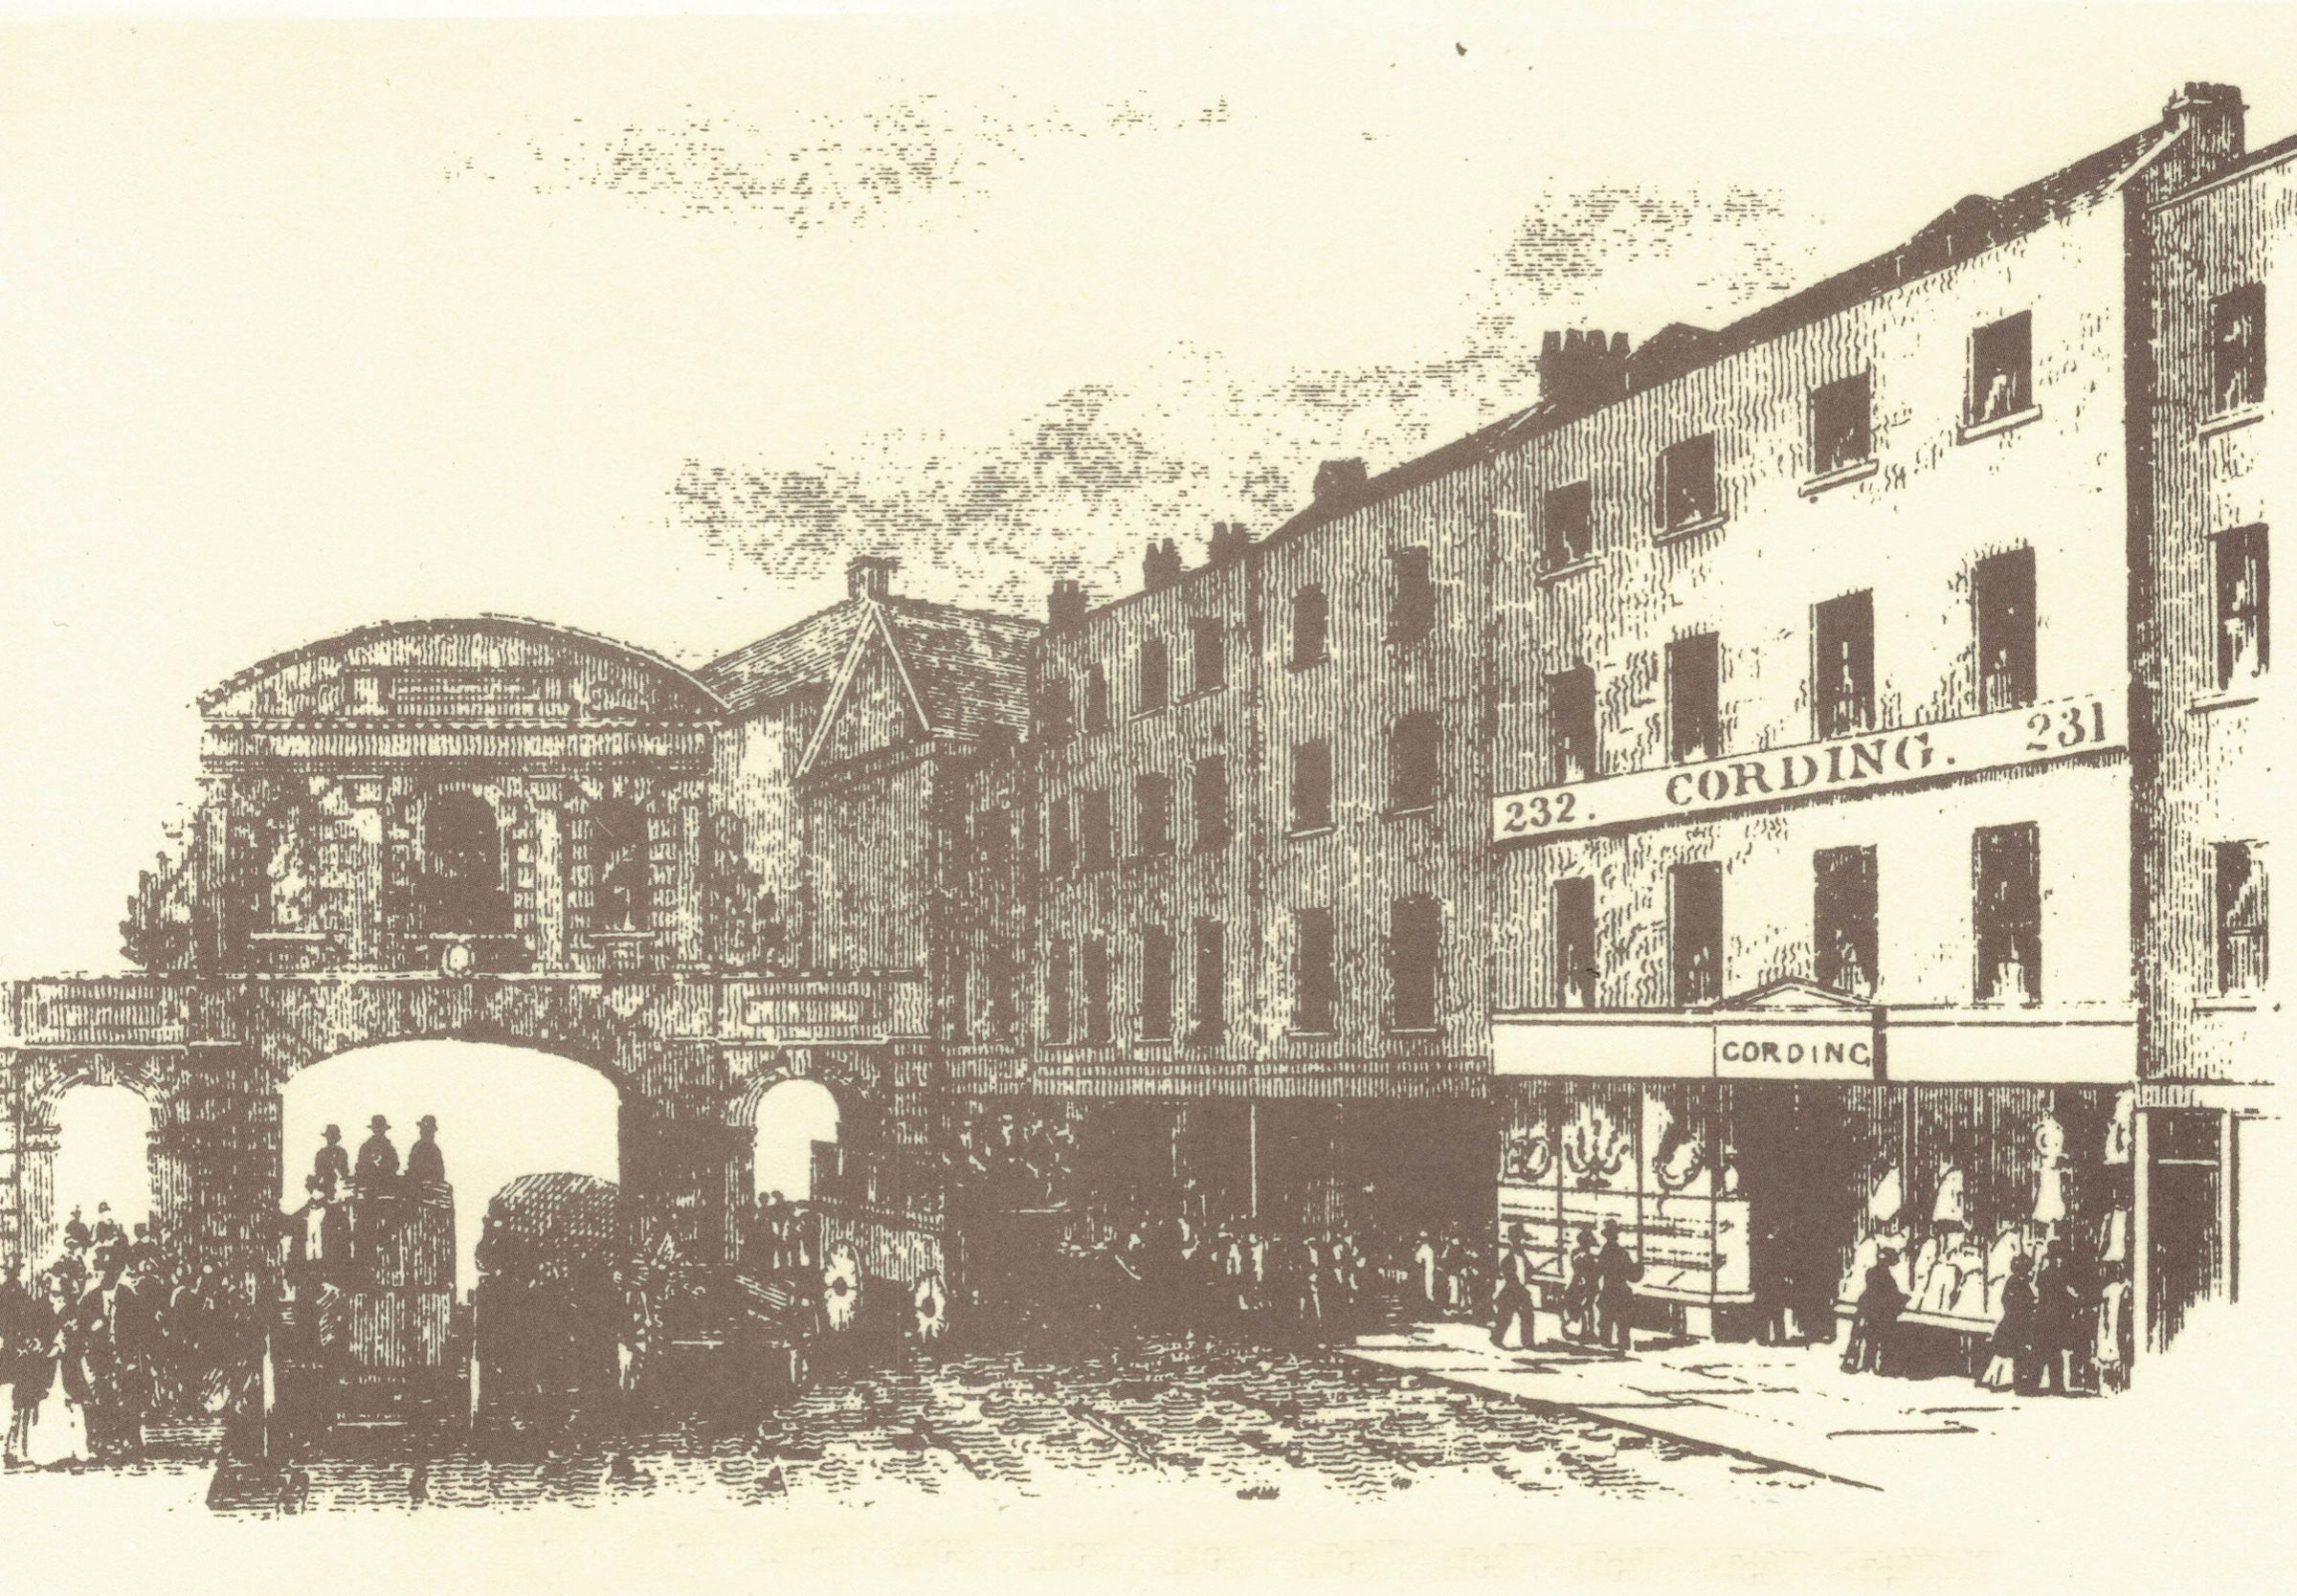 Cordings in The Strand in 1839